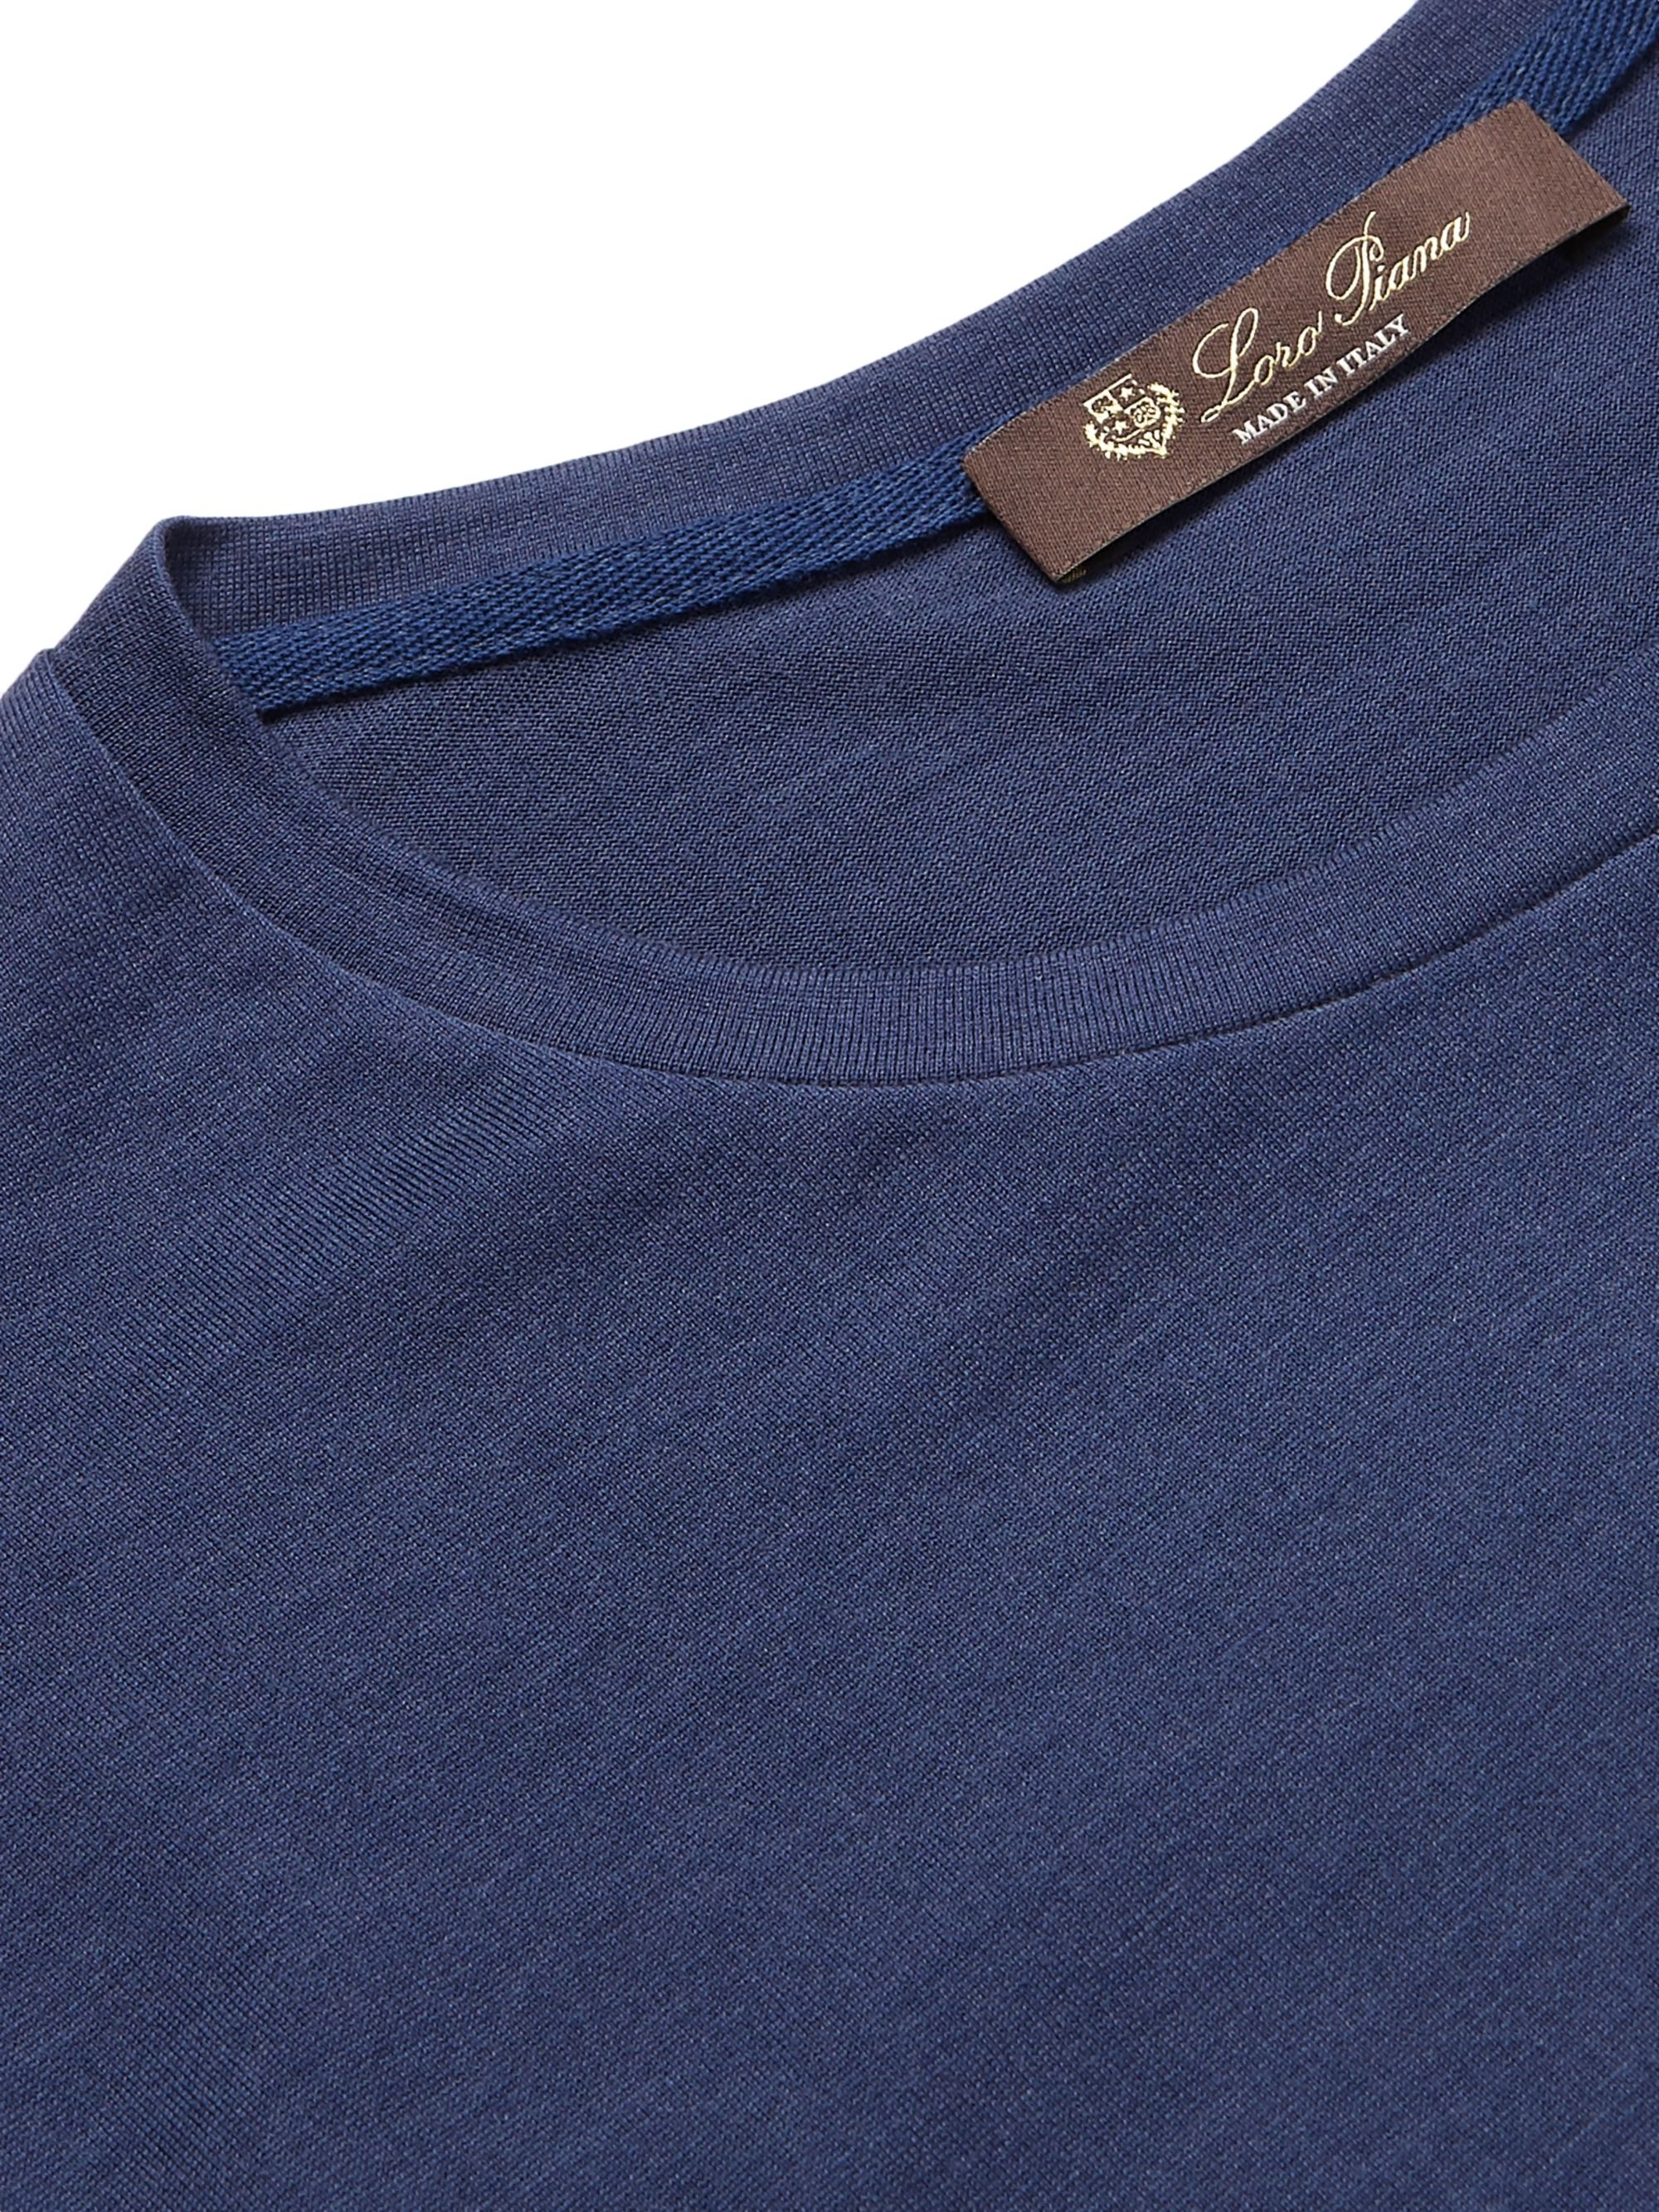 LORO PIANA Slim-Fit Silk and Cotton-Blend Jersey T-Shirt